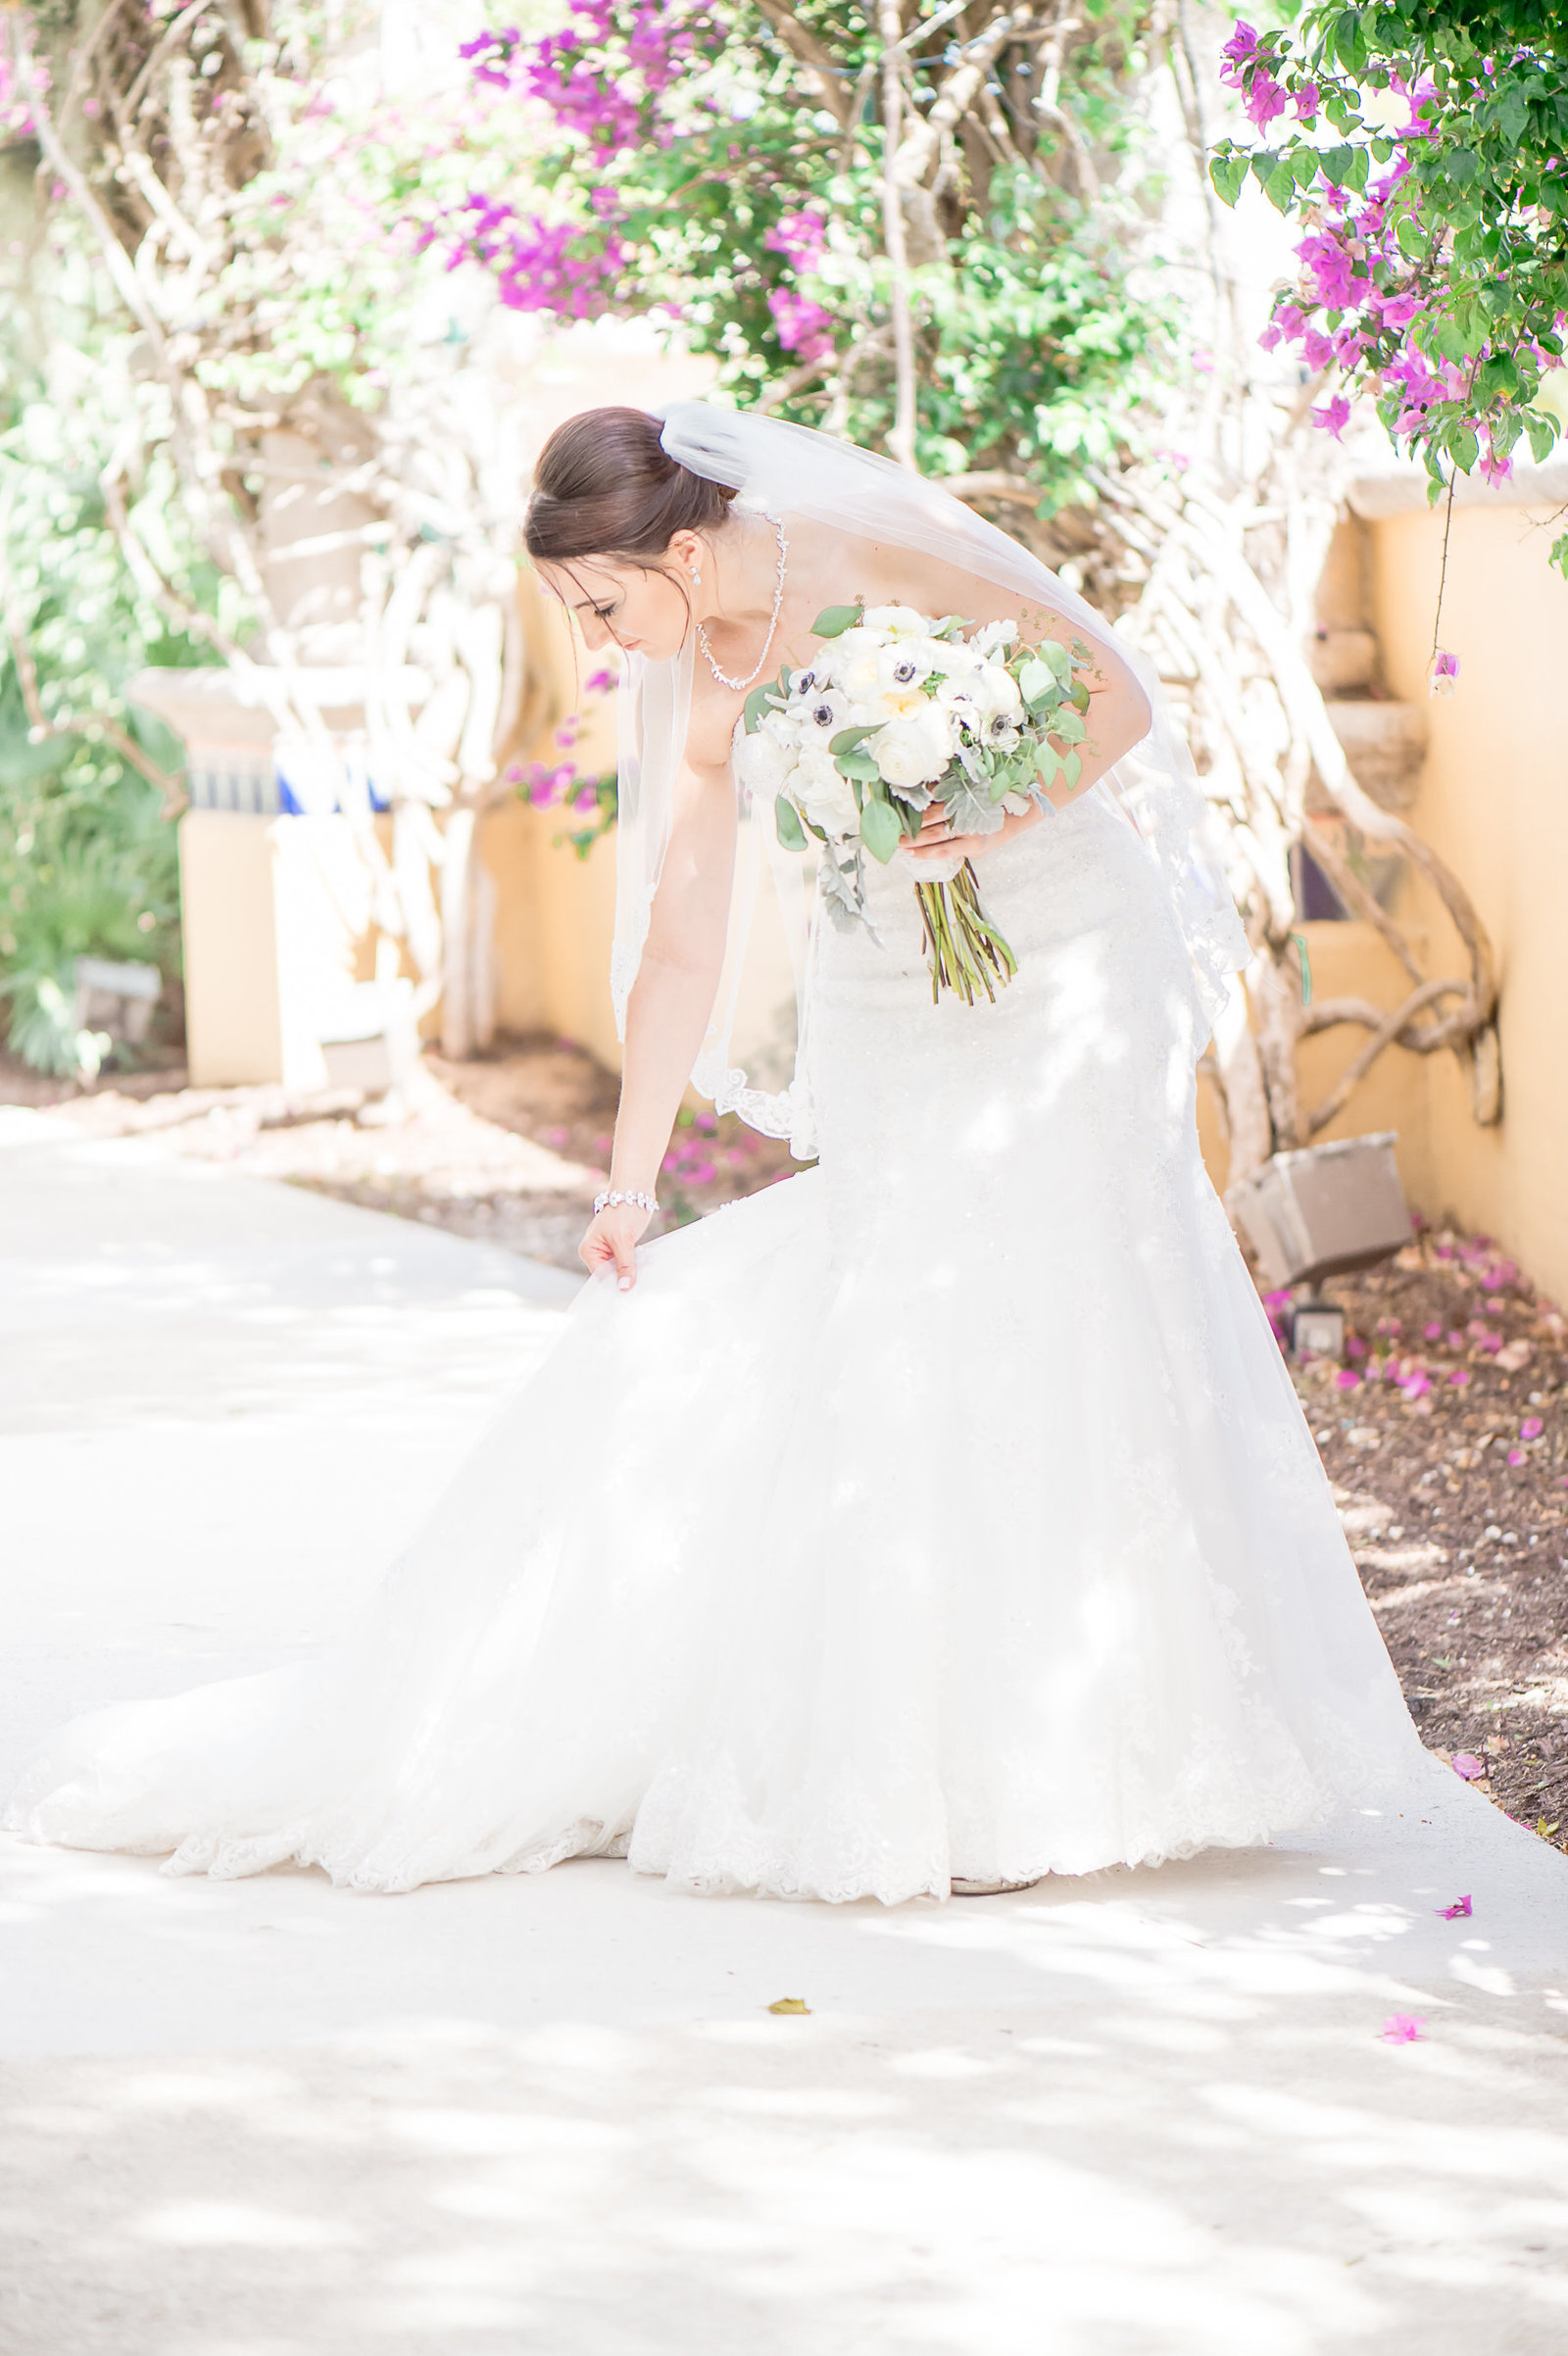 Beautiful Bride - Country Club at Mirasol Wedding - Palm Beach Wedding Photography by Palm Beach Photography, Inc.